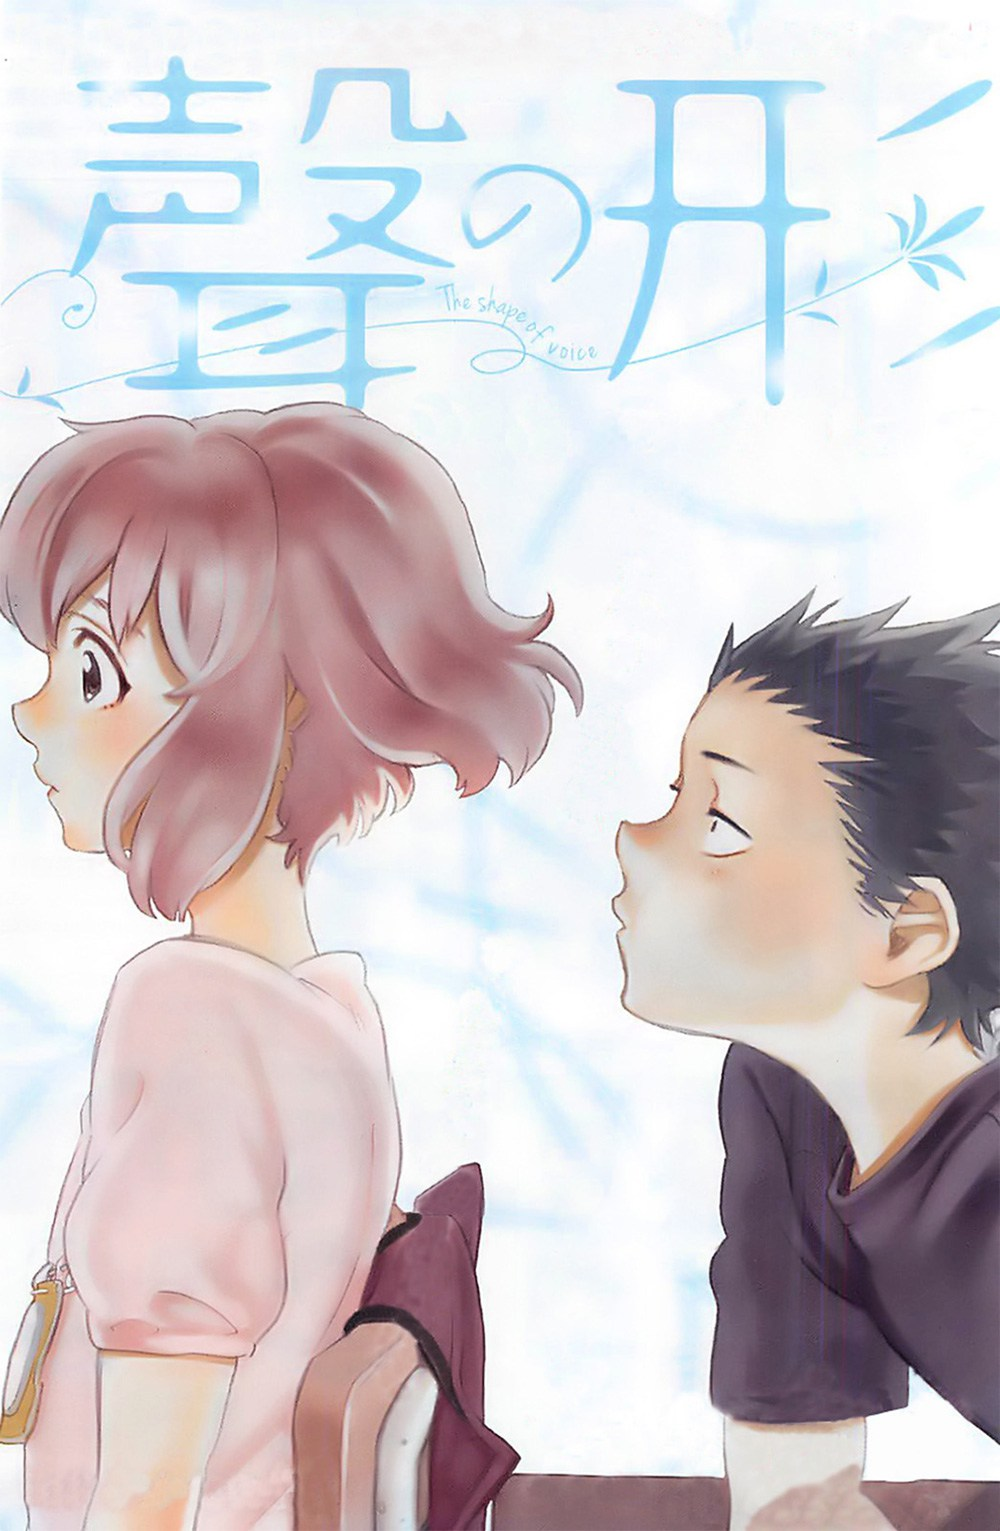 Kyoto-Animation-to-Produce-Koe-no-Katachi-Anime-Film-Share (1)